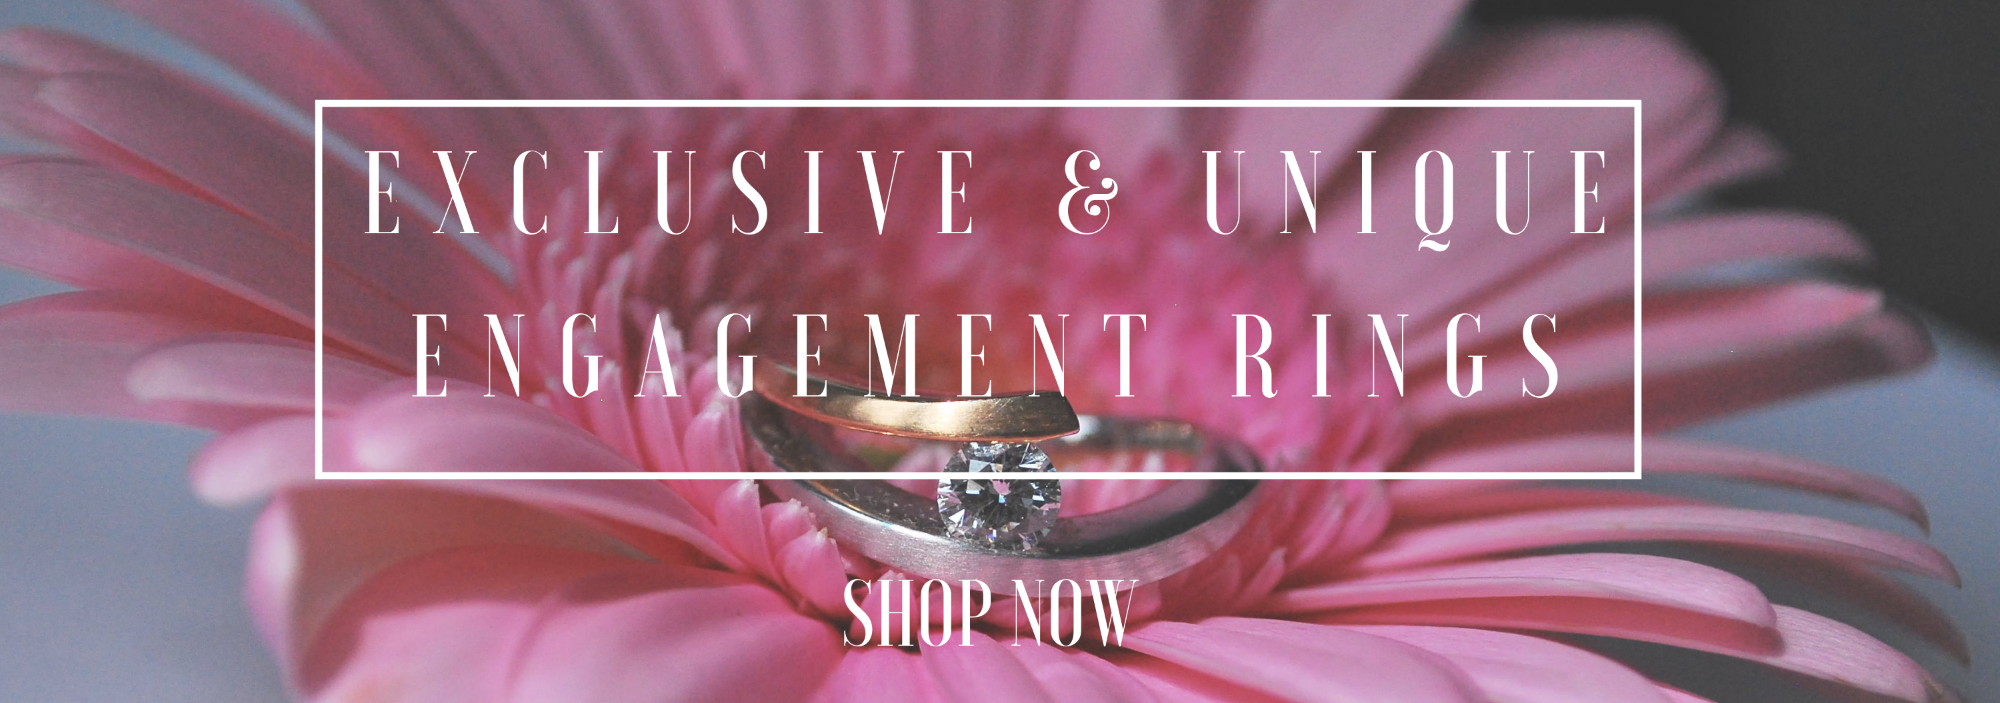 Exclusive, unique and unusual engagement rings